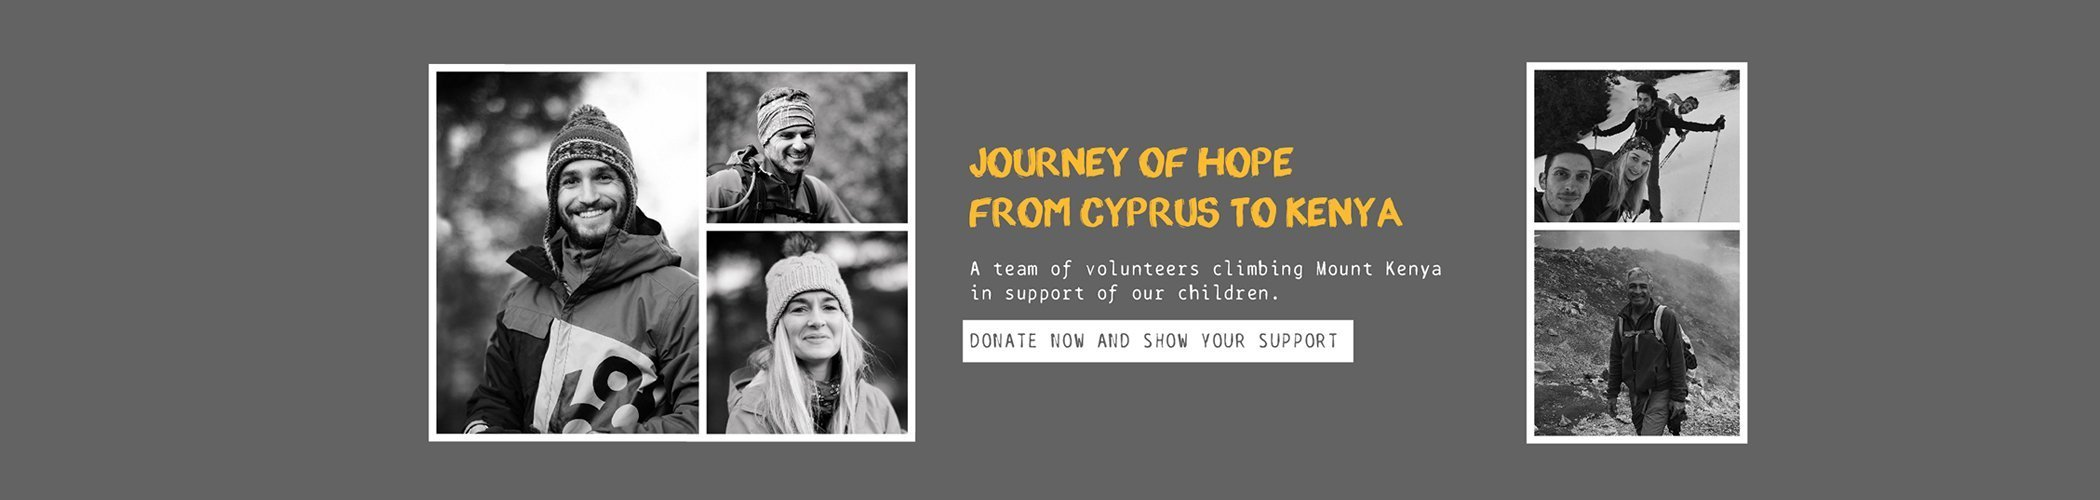 JOURNEY OF HOPE FROM CYPRUS TO KENYA